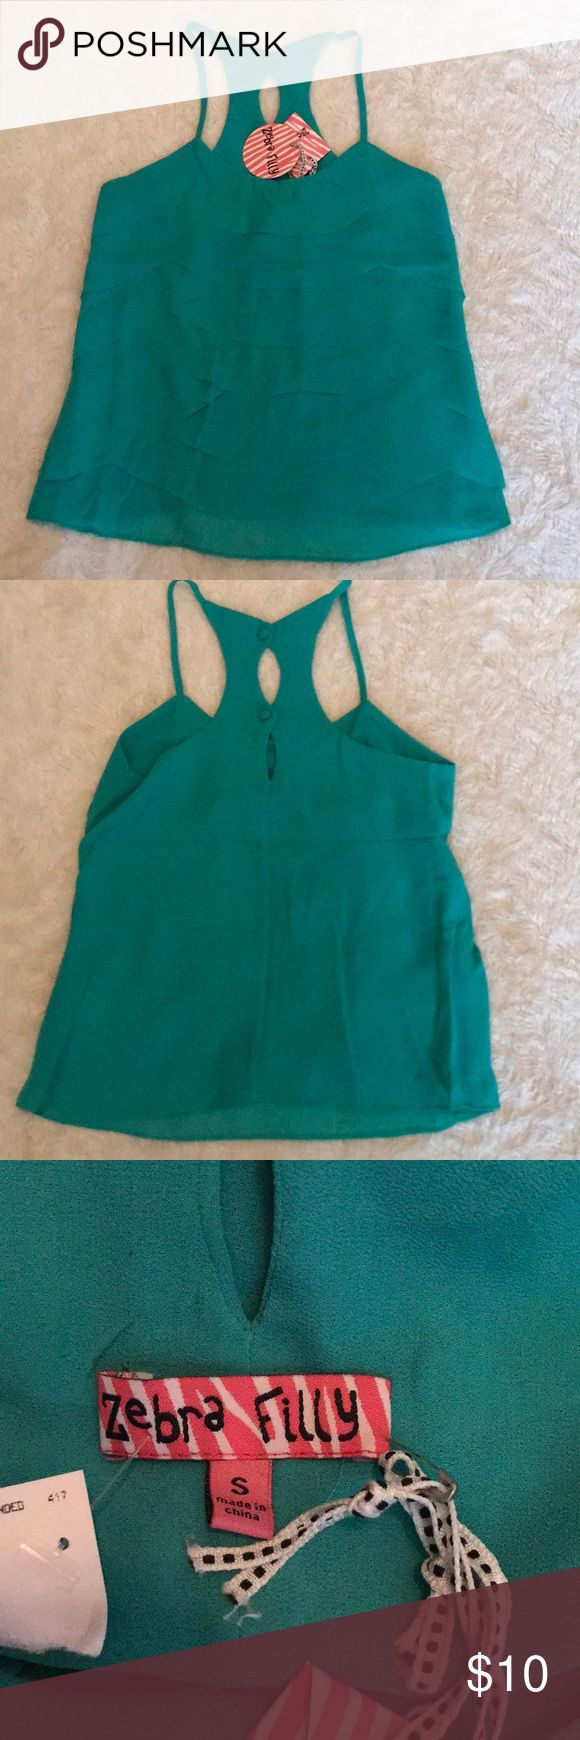 NWT Zebra Filly Girls Top Sz Small Super cute girls Top by Zebra Filly. Pretty green with ruffled front overlay. NWT!!  Check out my closet and bundle! Would look great with the DKNY white denim I have for sale! Zebra Filly Shirts & Tops